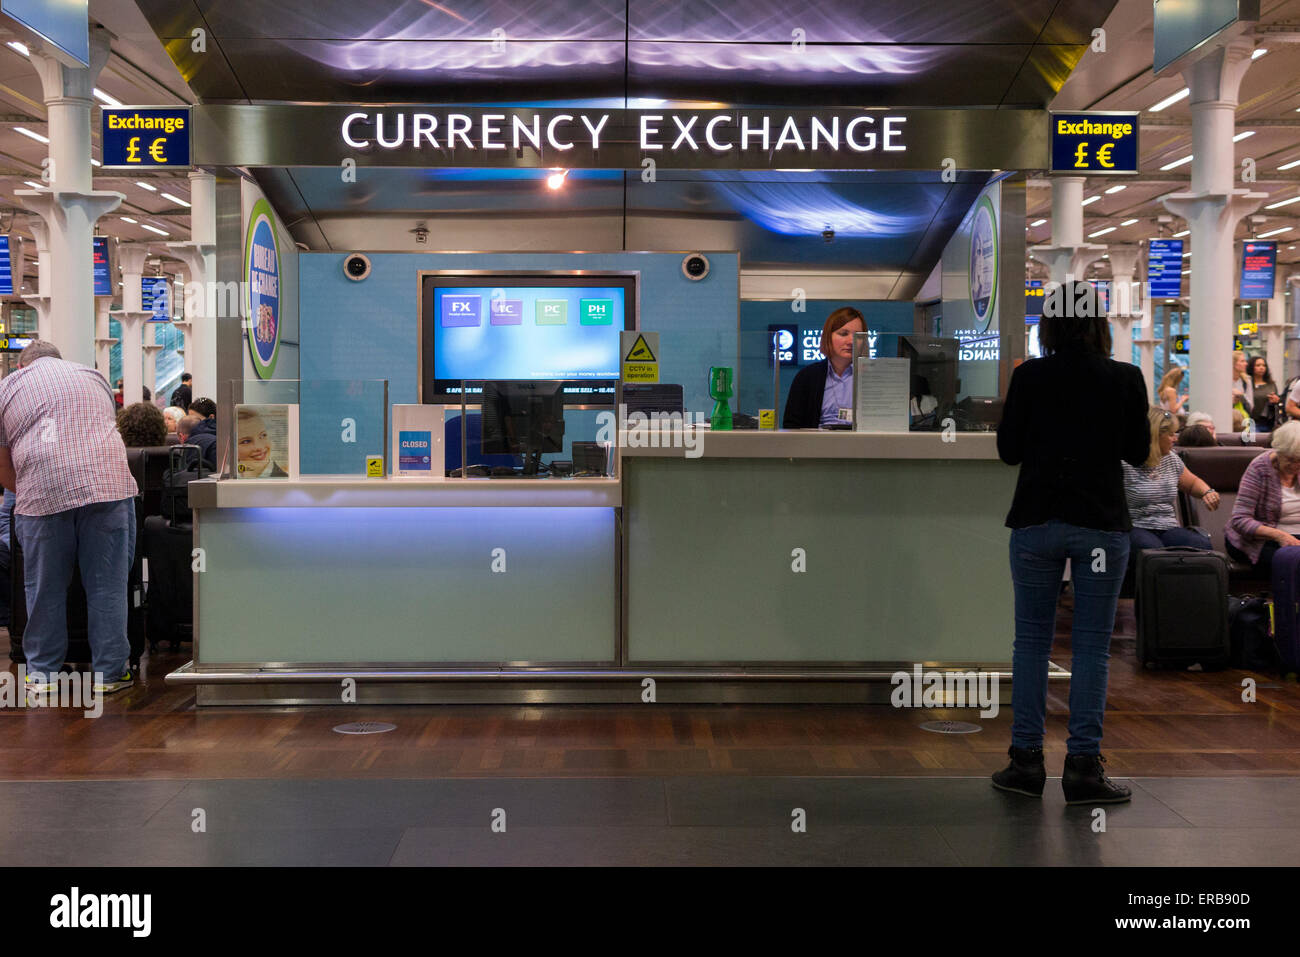 A currency exchange bureau editorial photo image of sign